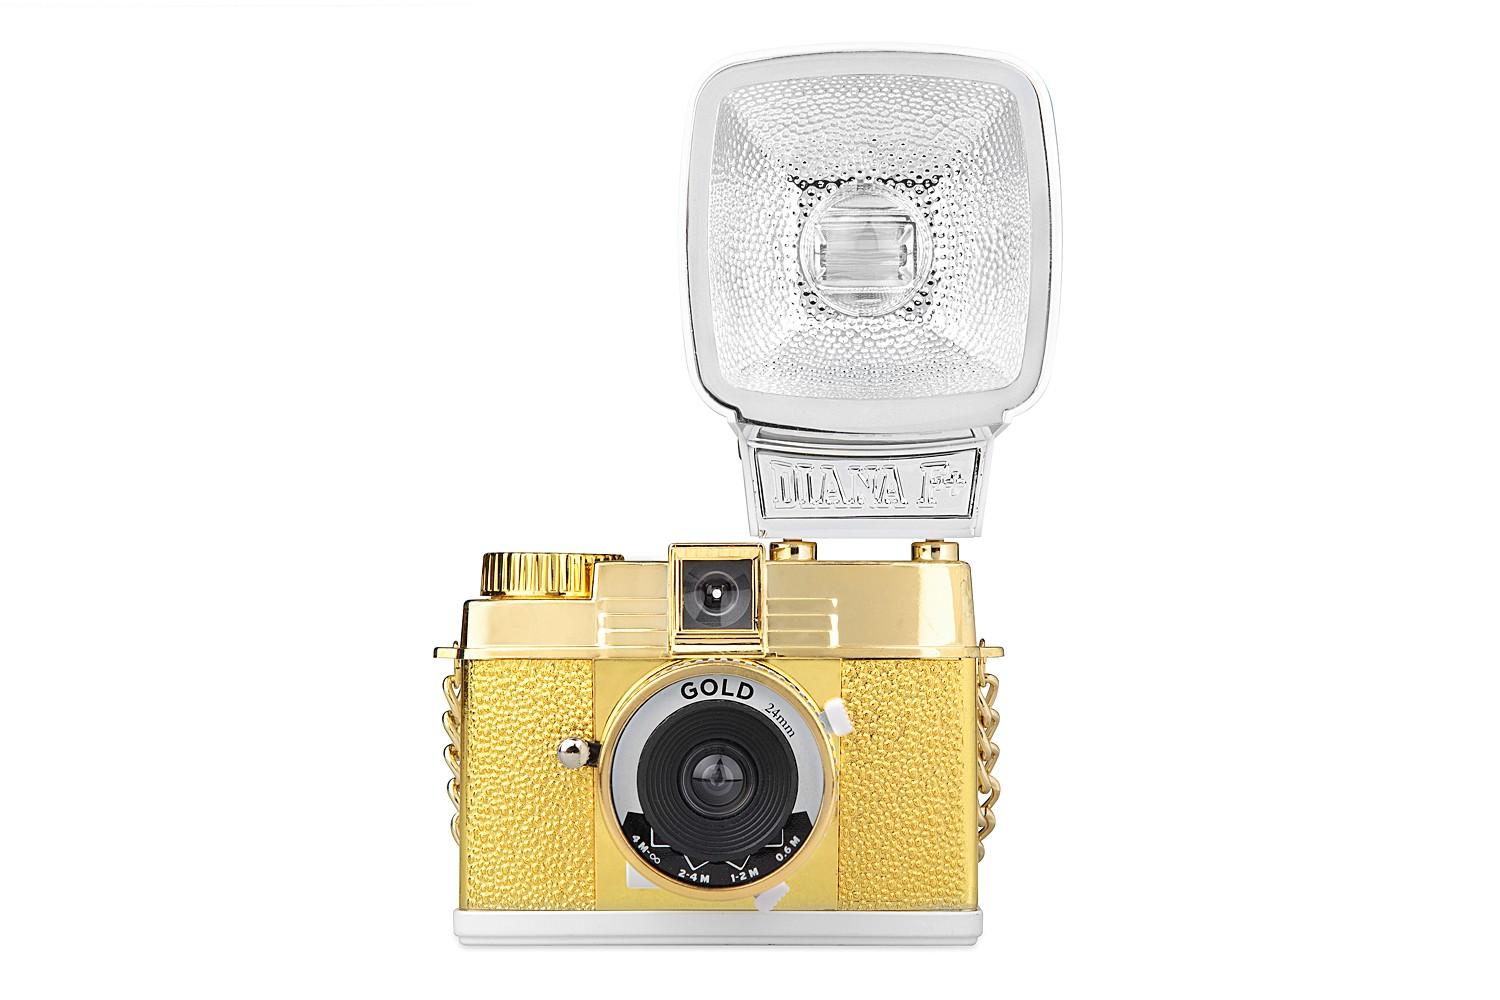 Diana Mini Camera and Flash (Gold Edition)